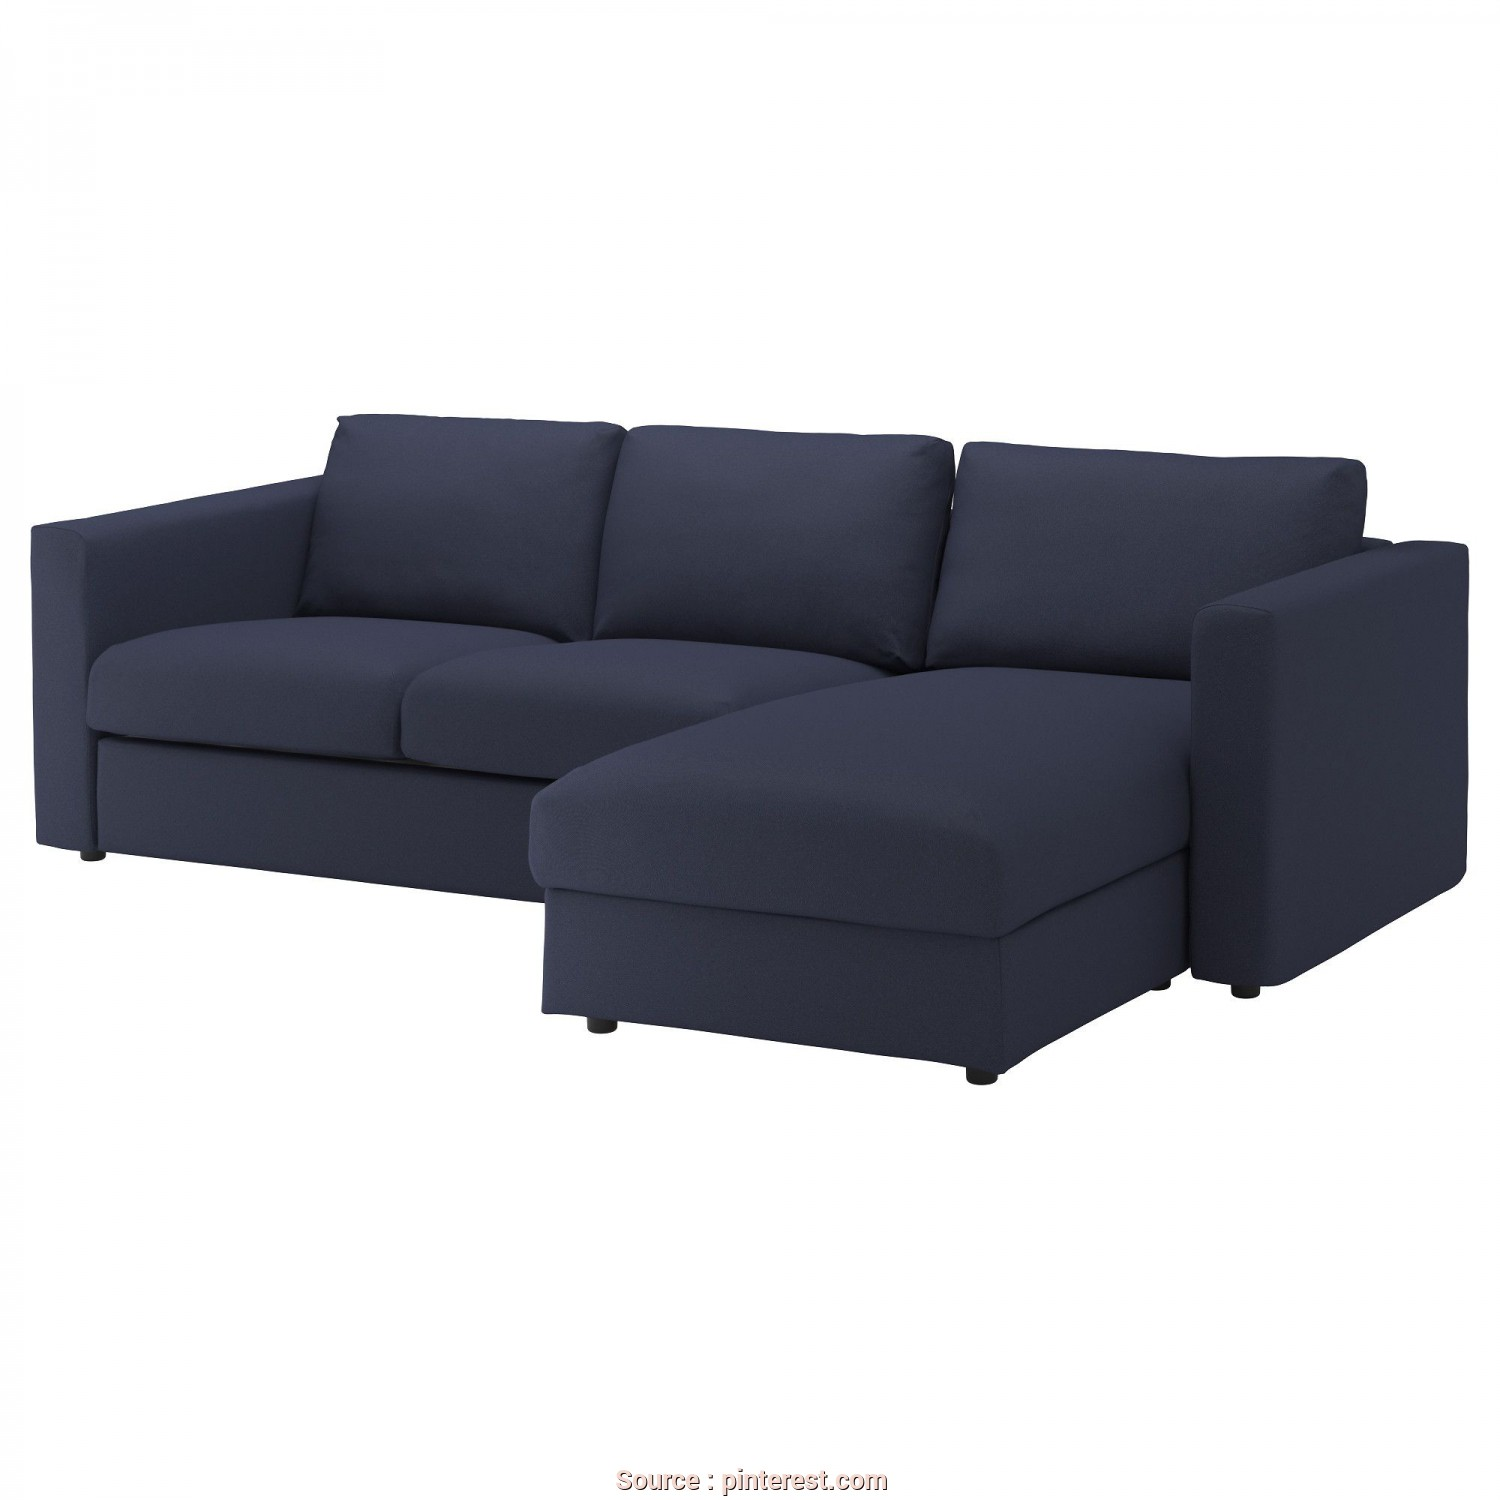 Ikea Klippan 3 Sitzer Sofa, Affascinante IKEA, VIMLE, Sofa, With Chaise/Orrsta Black-Blue, , This Soft, Cozy Sofa Will Have A Long Life As, Seat Cushions, Filled With High Resilience Foam